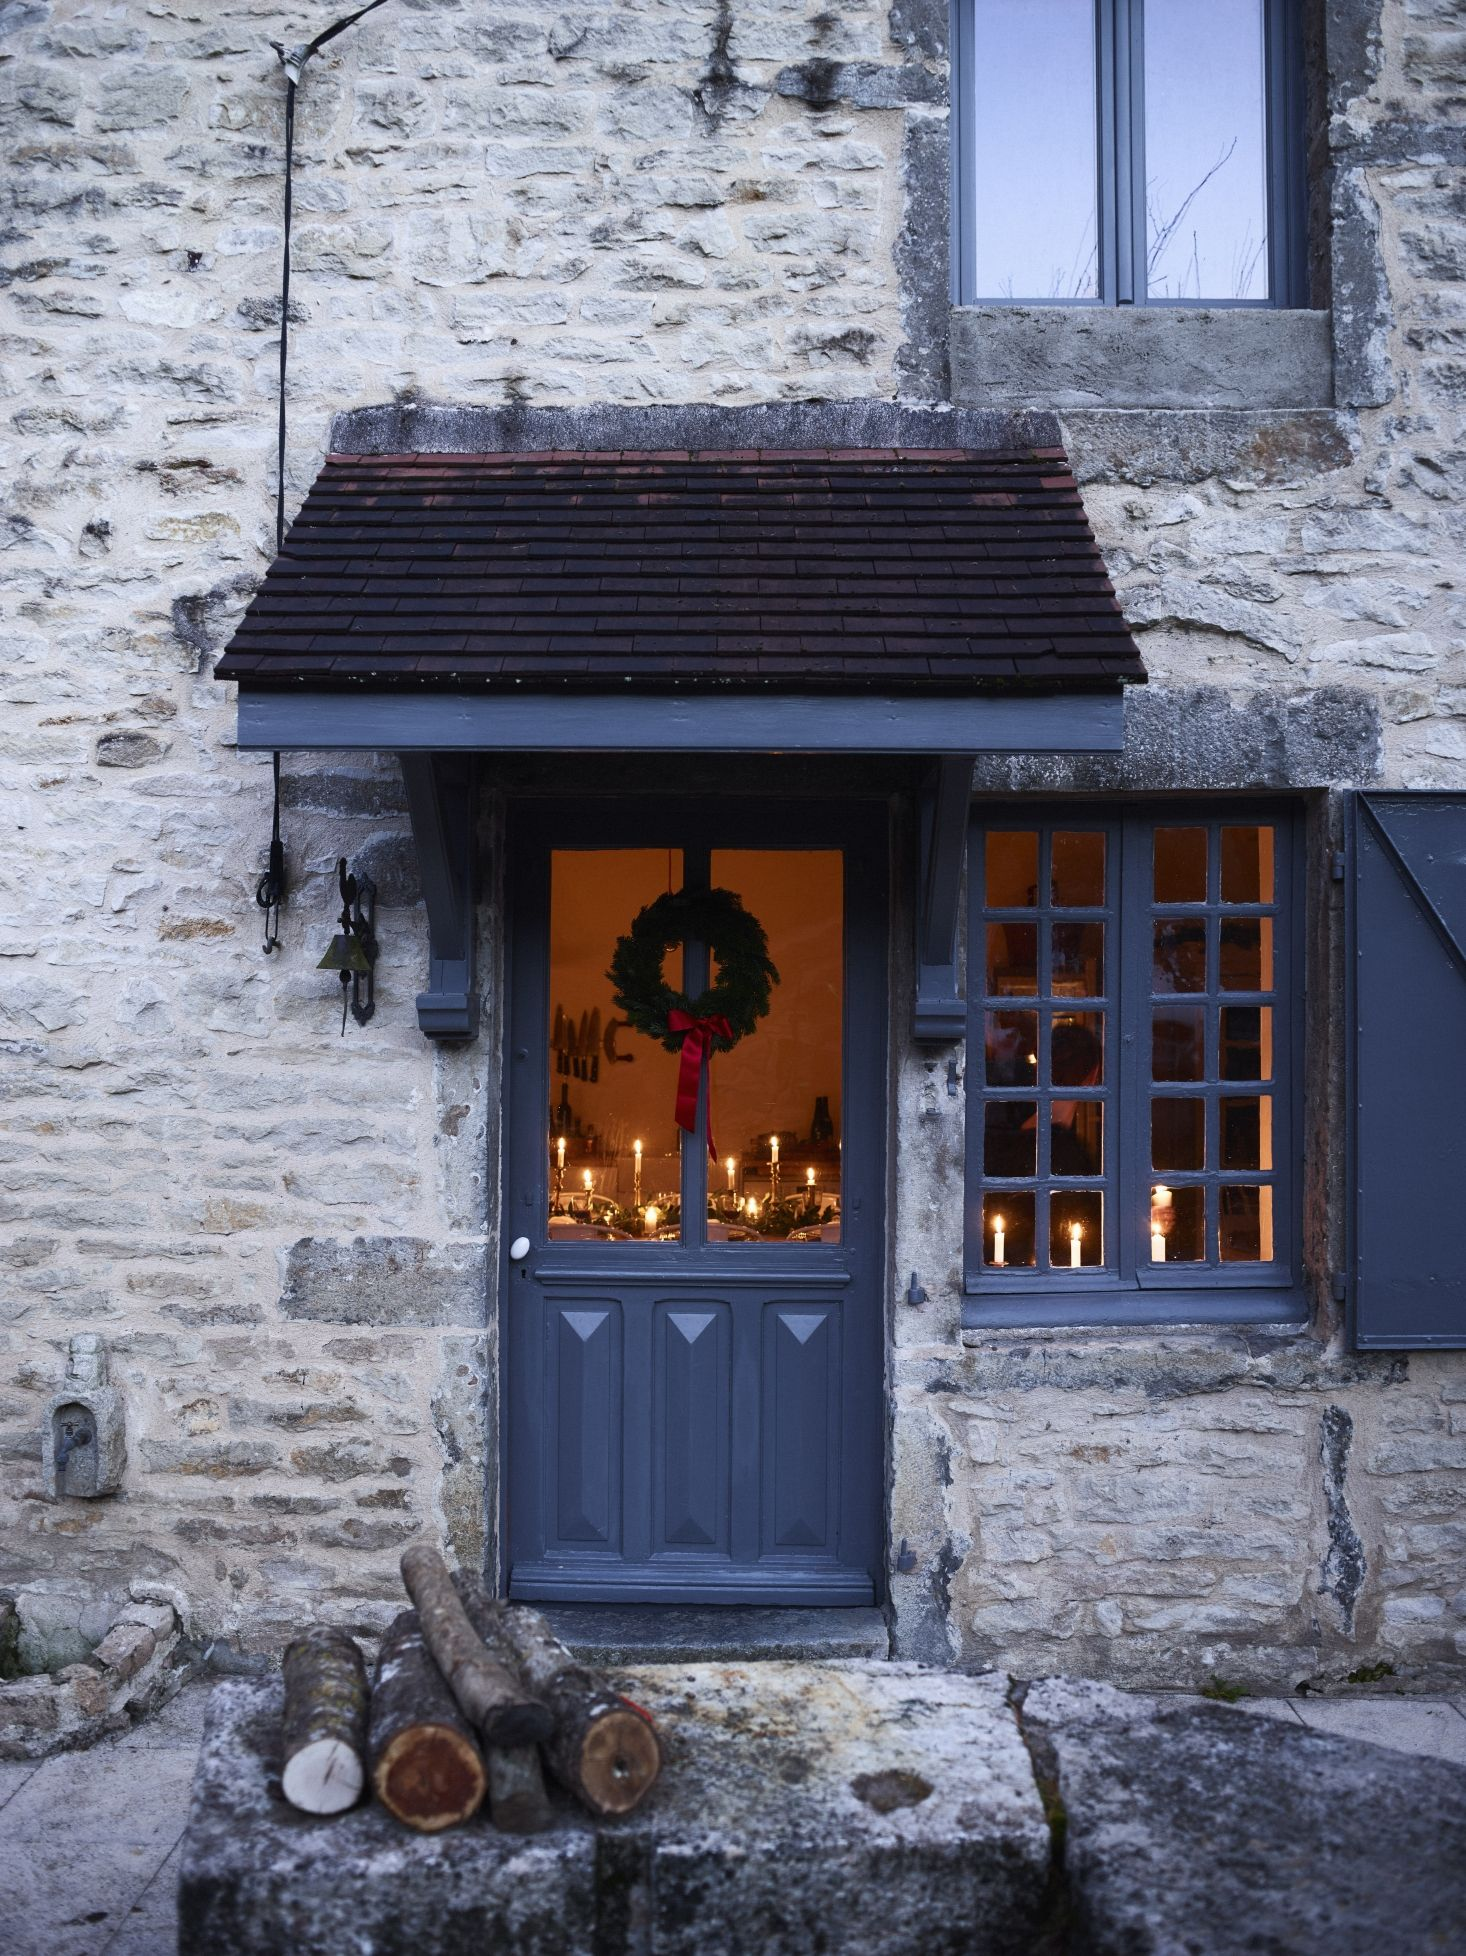 Simple Christmas Decor In Burgundy France With The Cook S Atelier Simple Christmas Decor Old Stone Houses Front Door